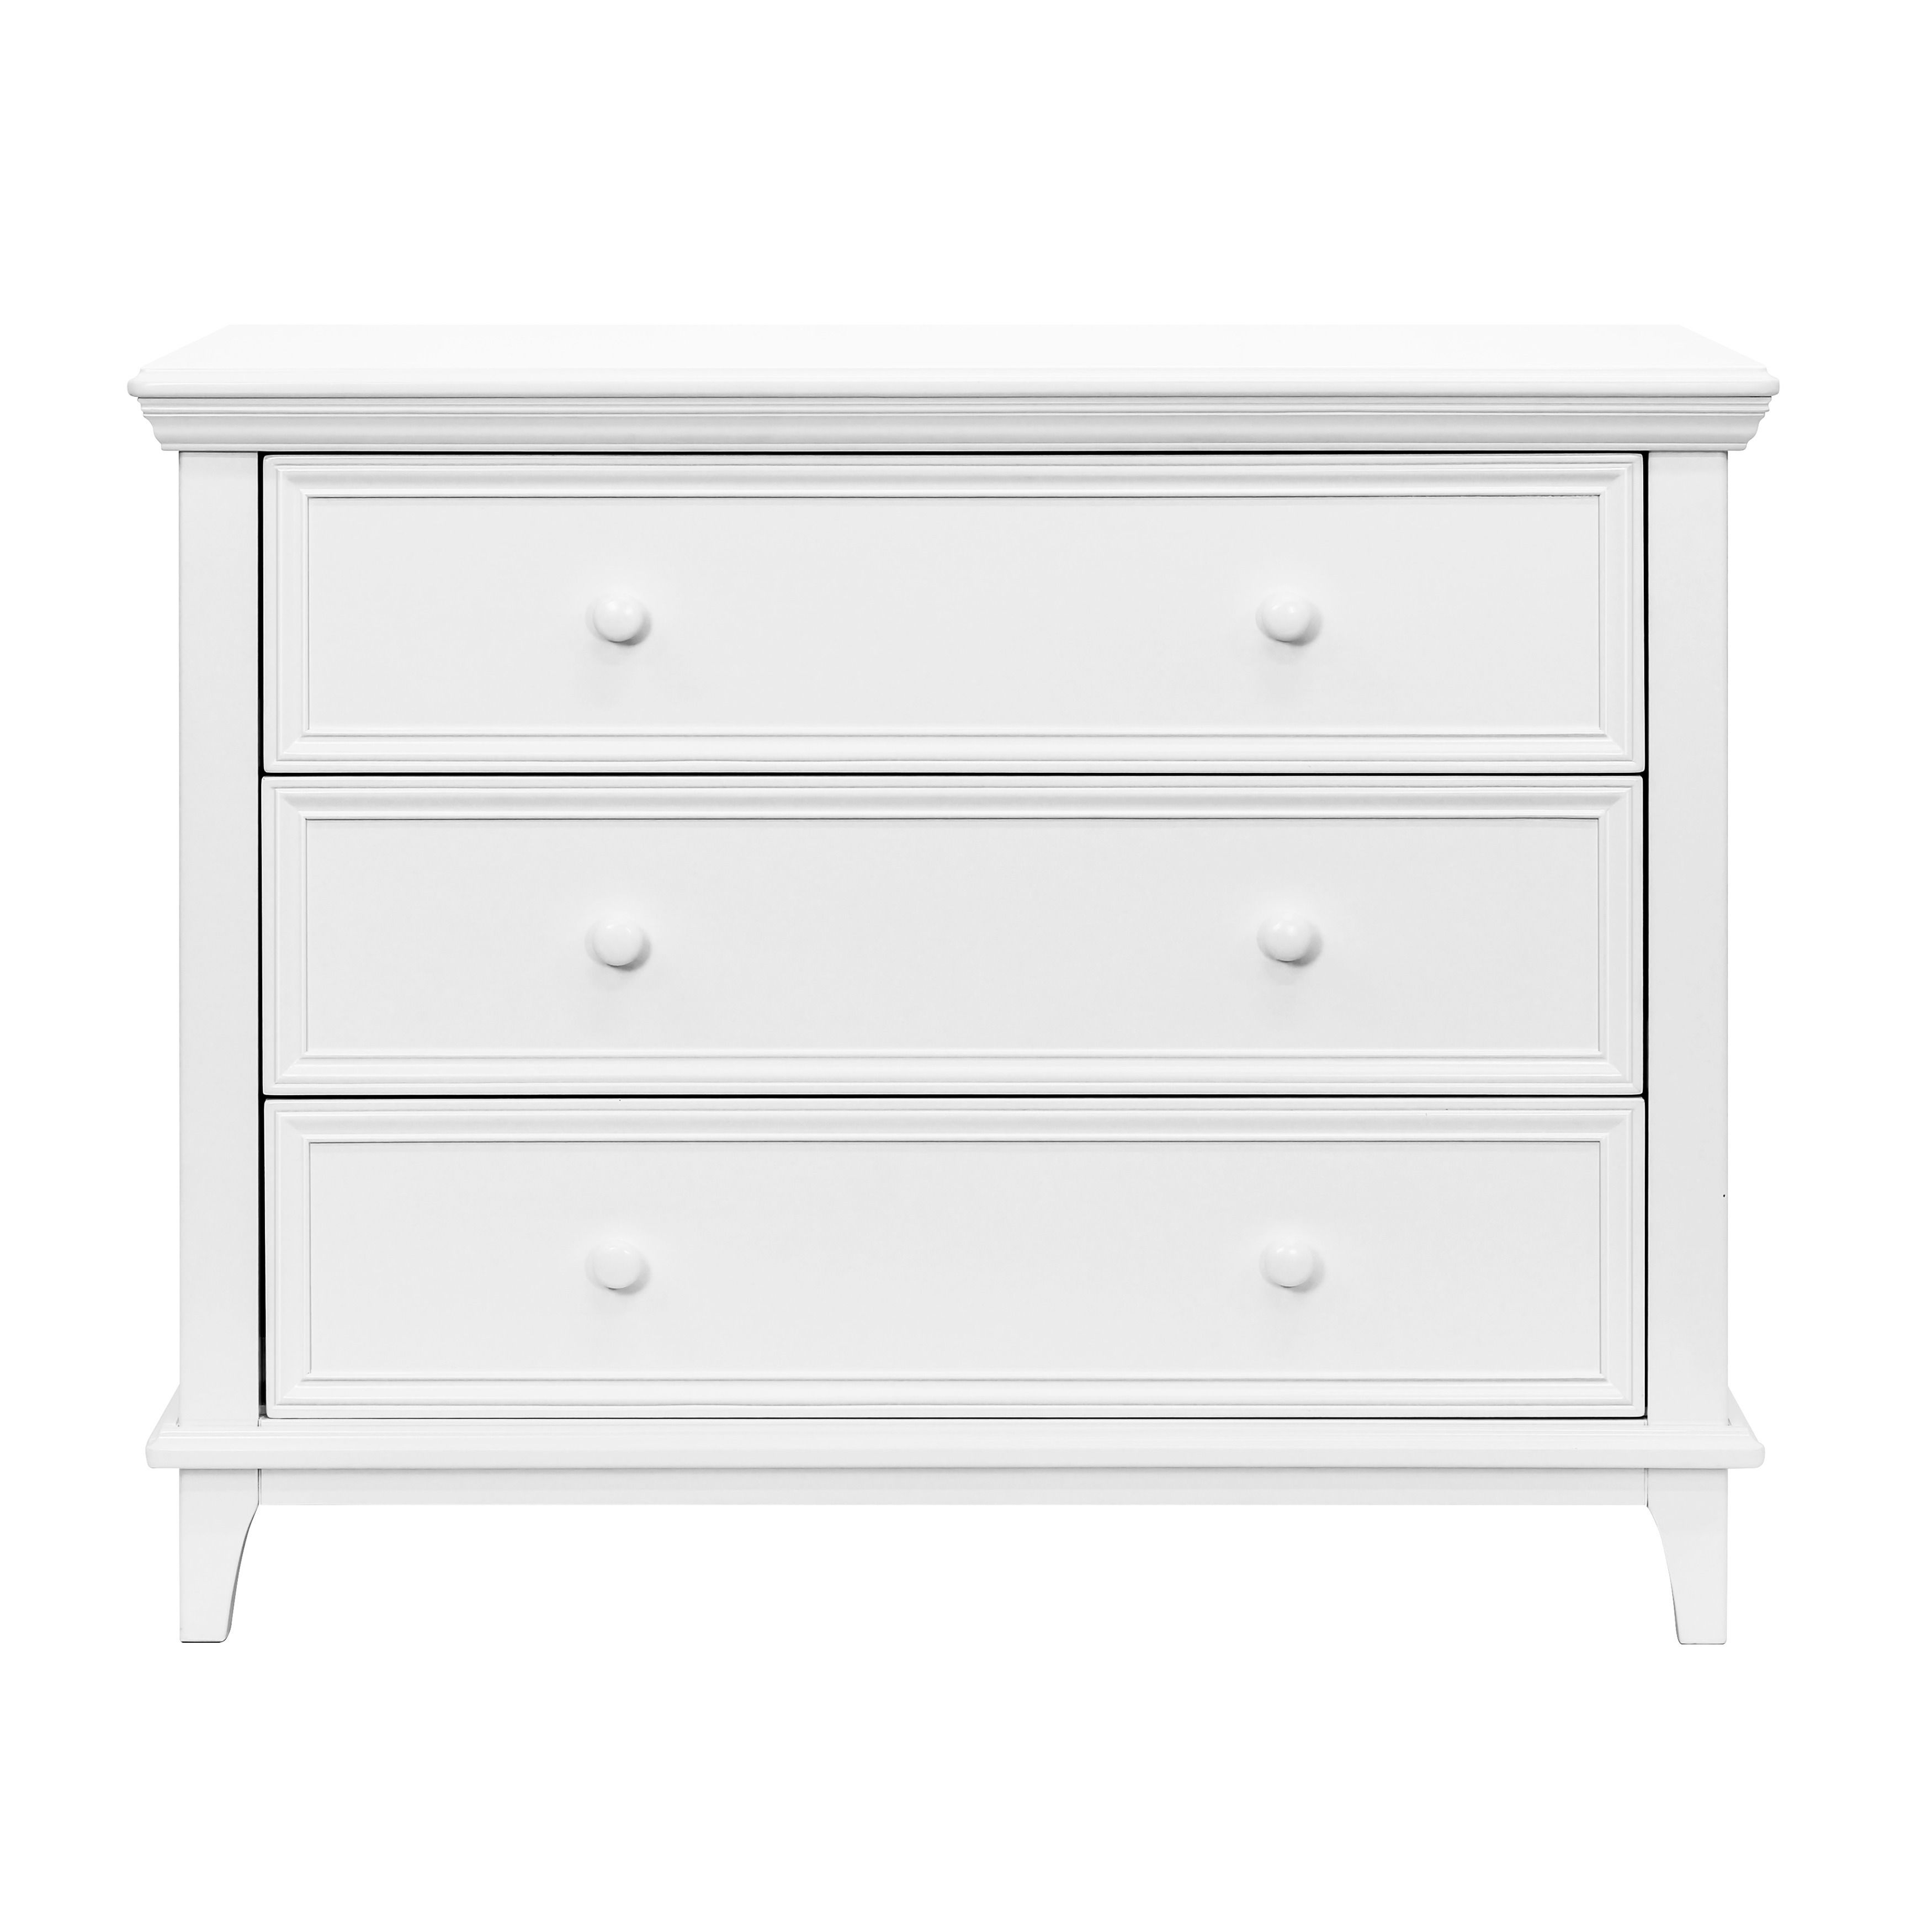 This sturdy dresser is the perfect height to accomodate a contour